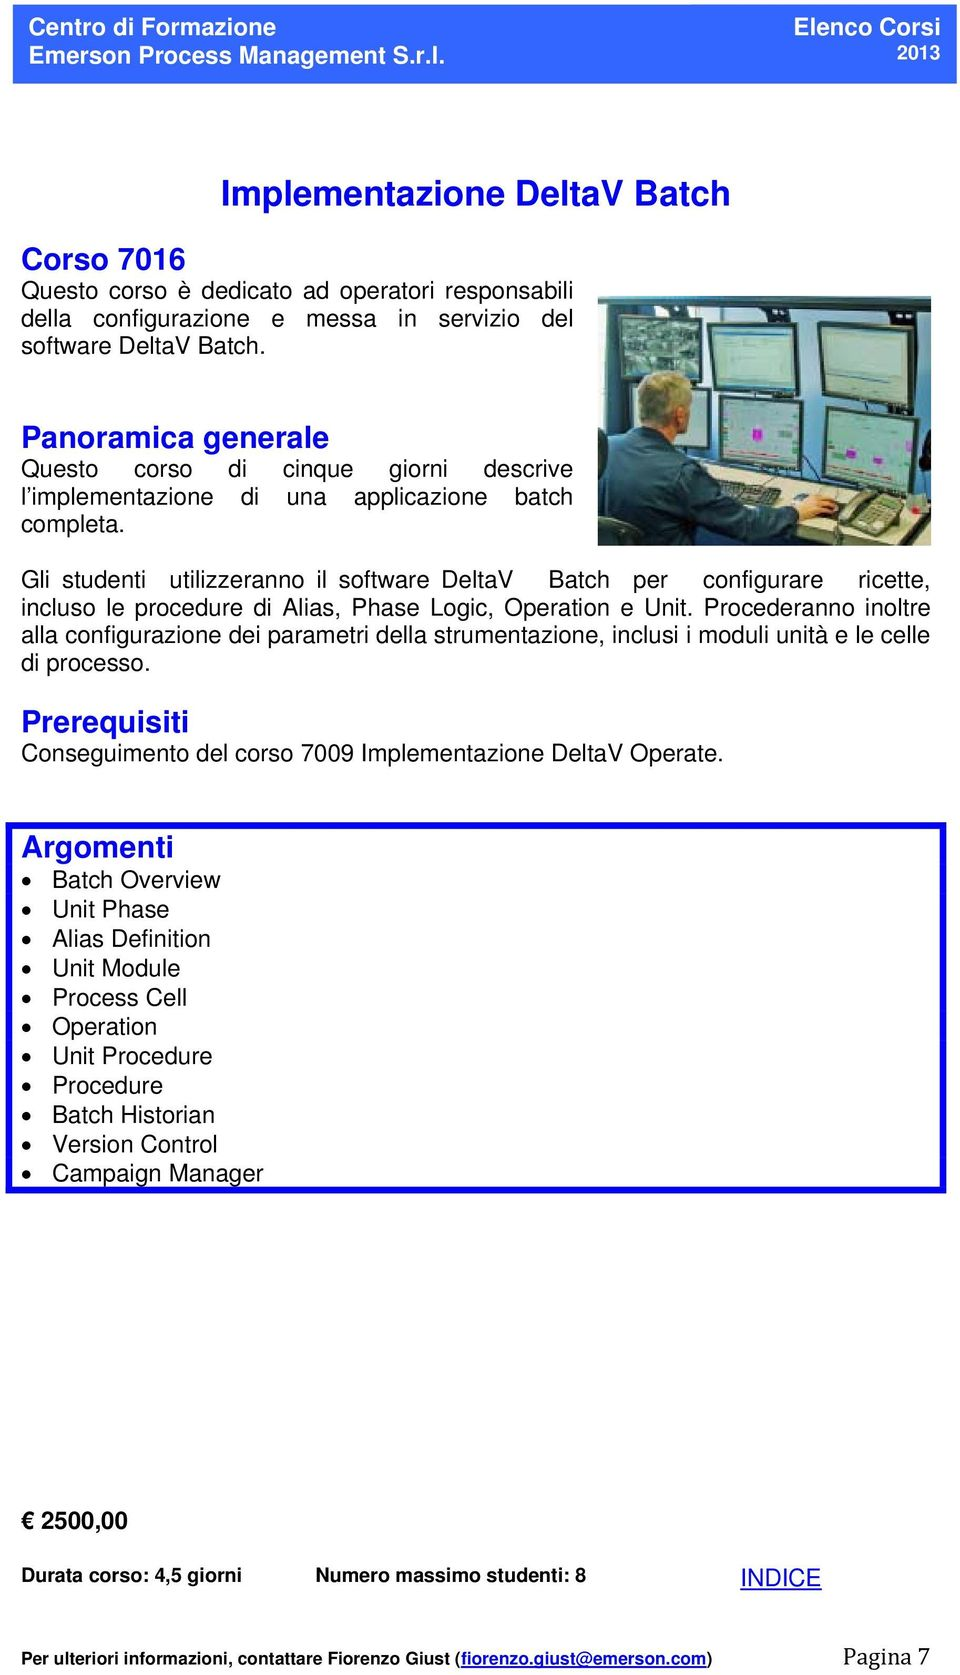 Gli studenti utilizzeranno il software DeltaV Batch per configurare ricette, incluso le procedure di Alias, Phase Logic, Operation e Unit.